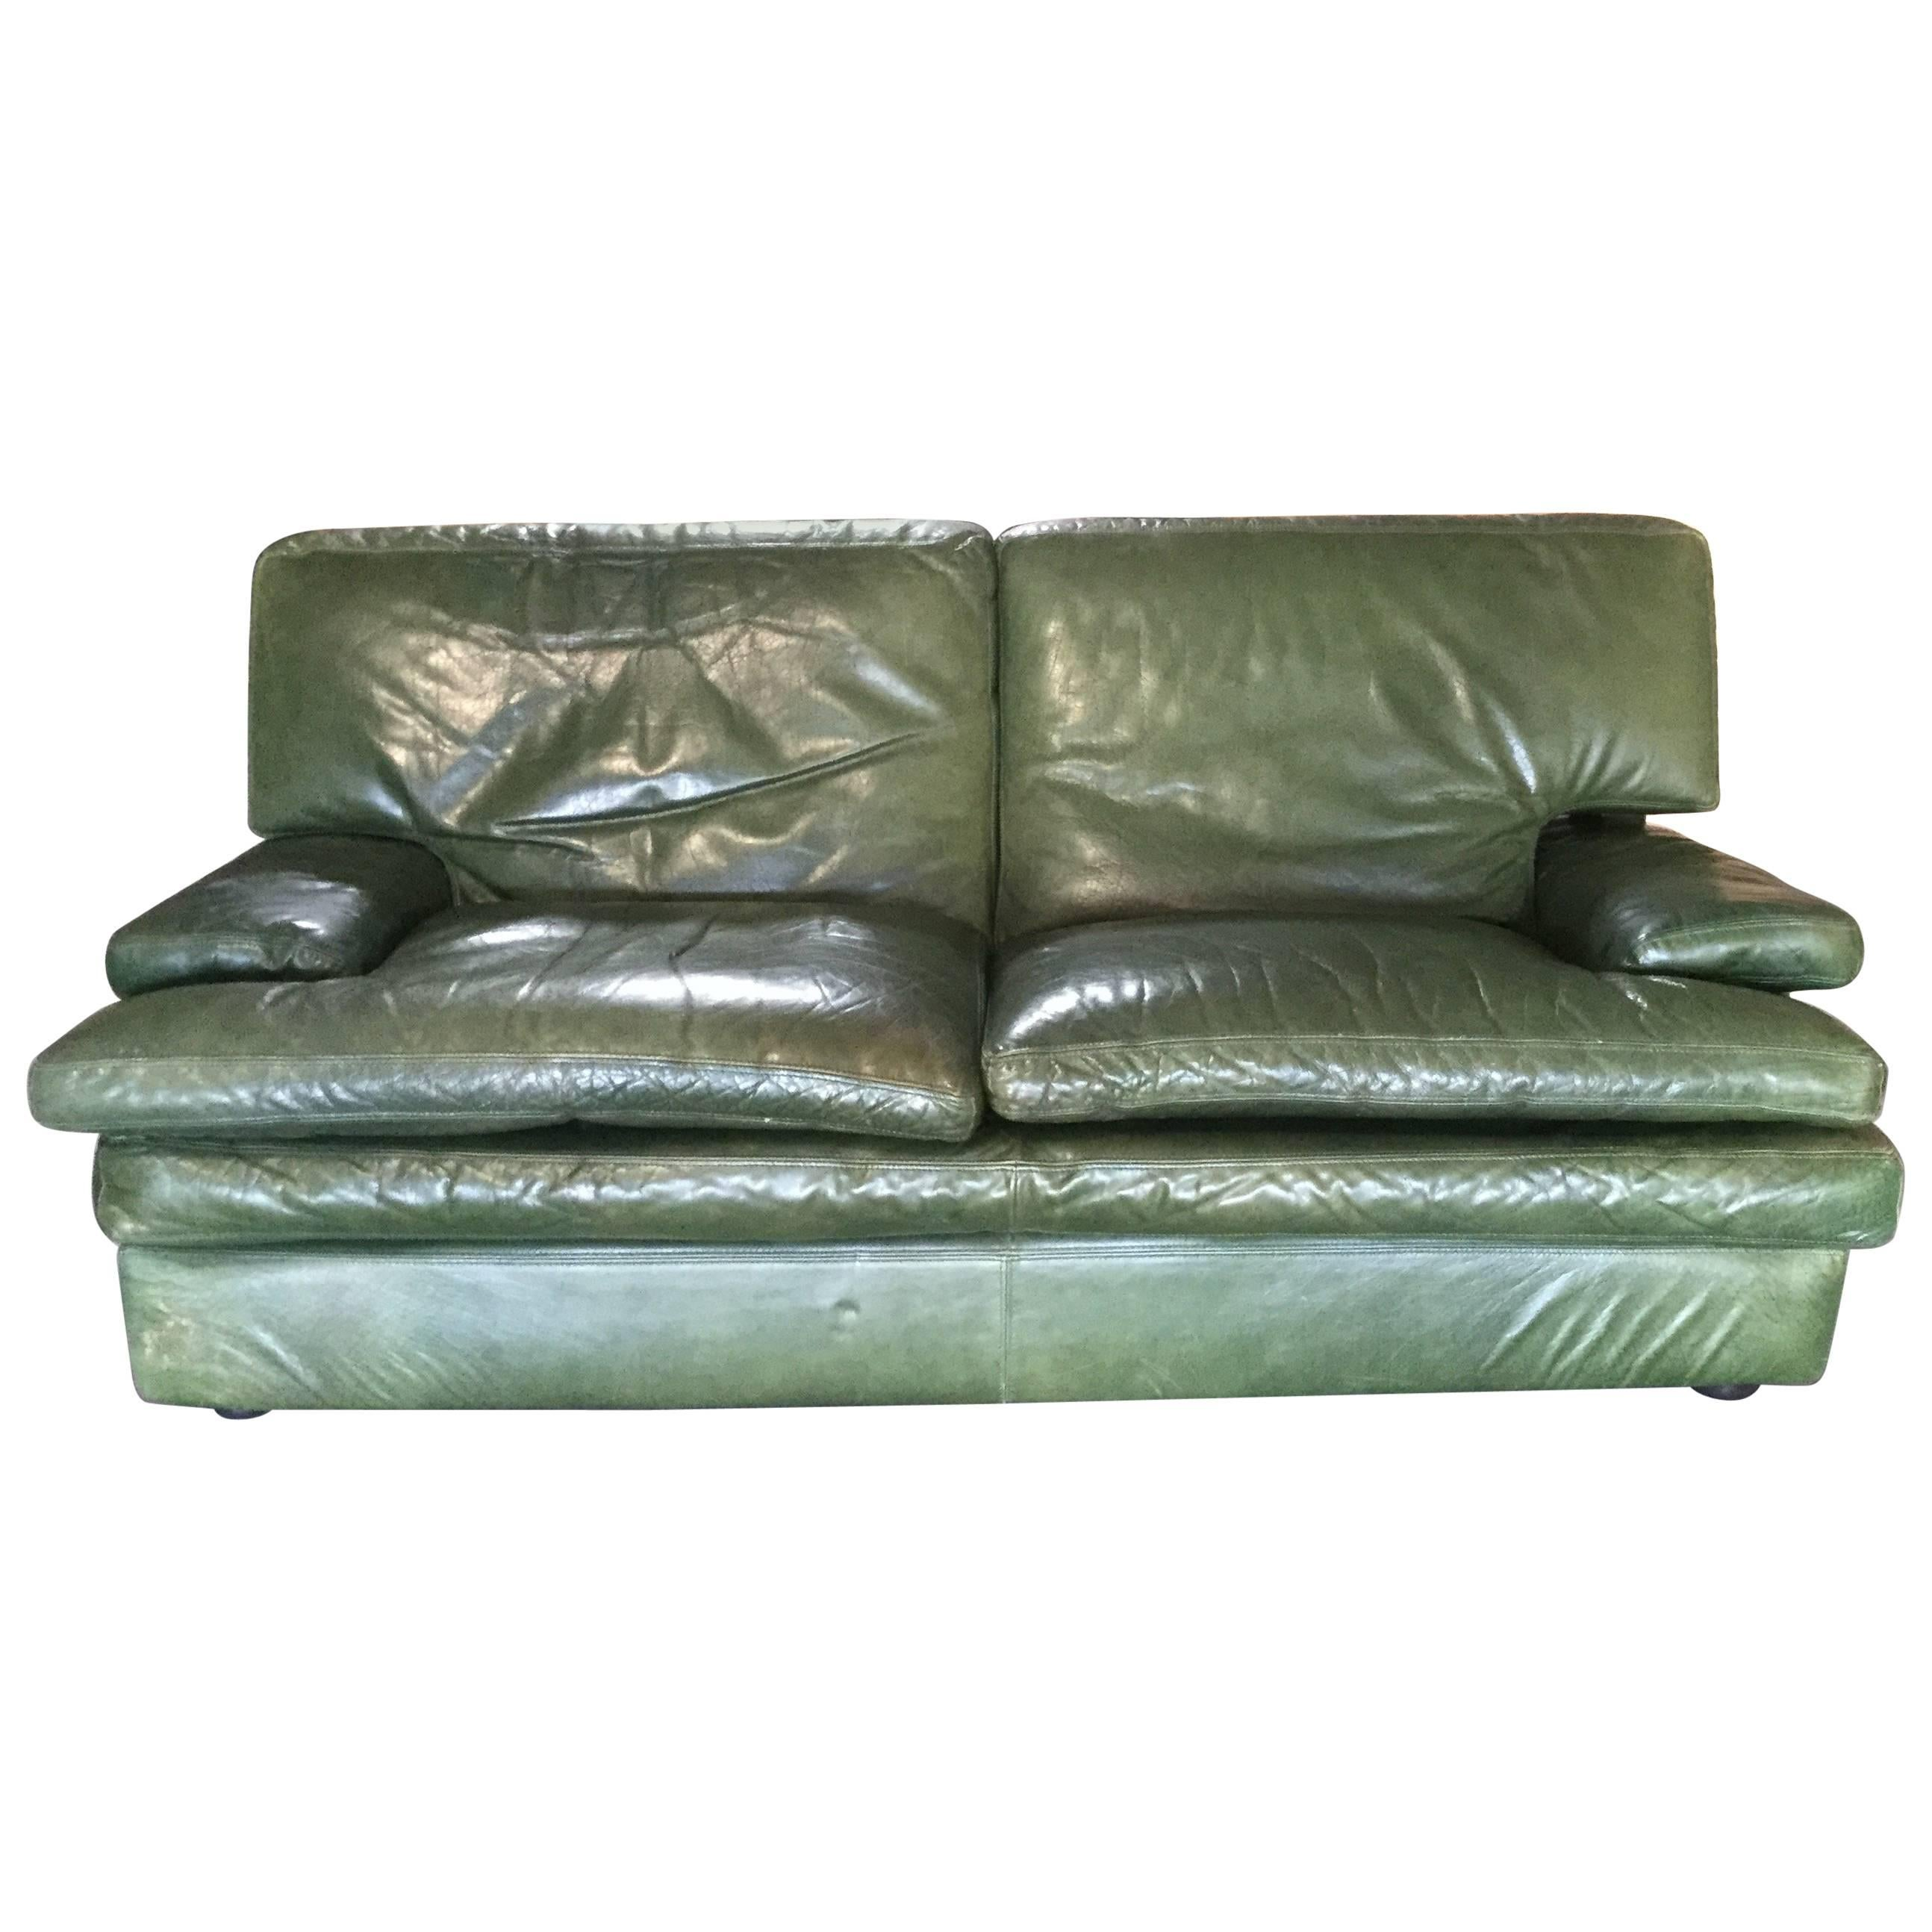 Supple Green Leather Roche Bobois Vintage Sofa For Sale